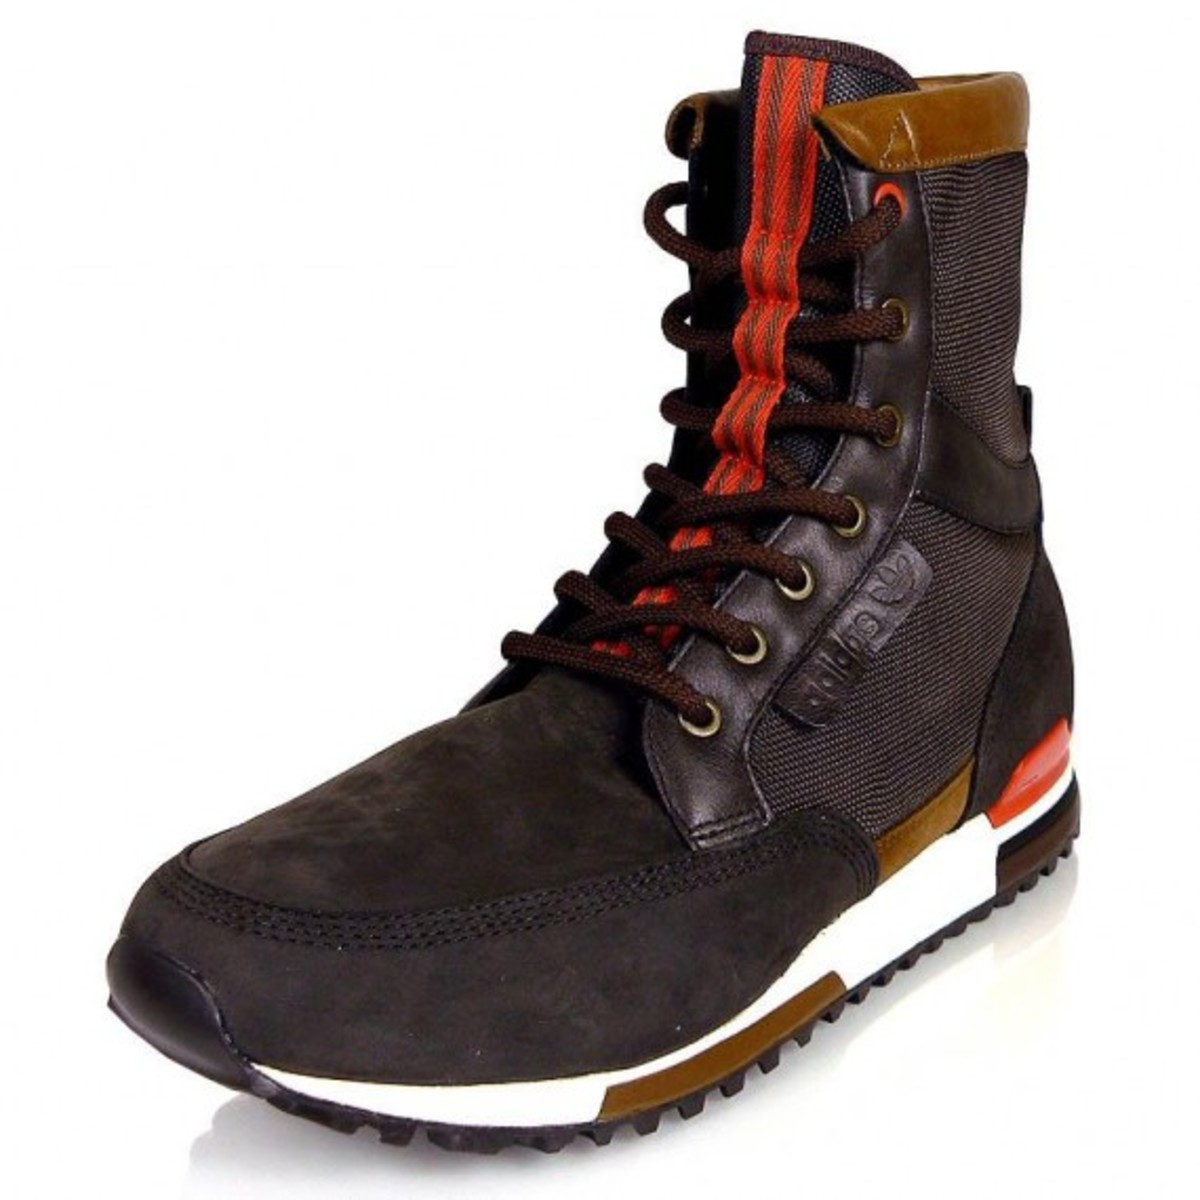 adidas-zx700-boat-winter-boot-hi-02